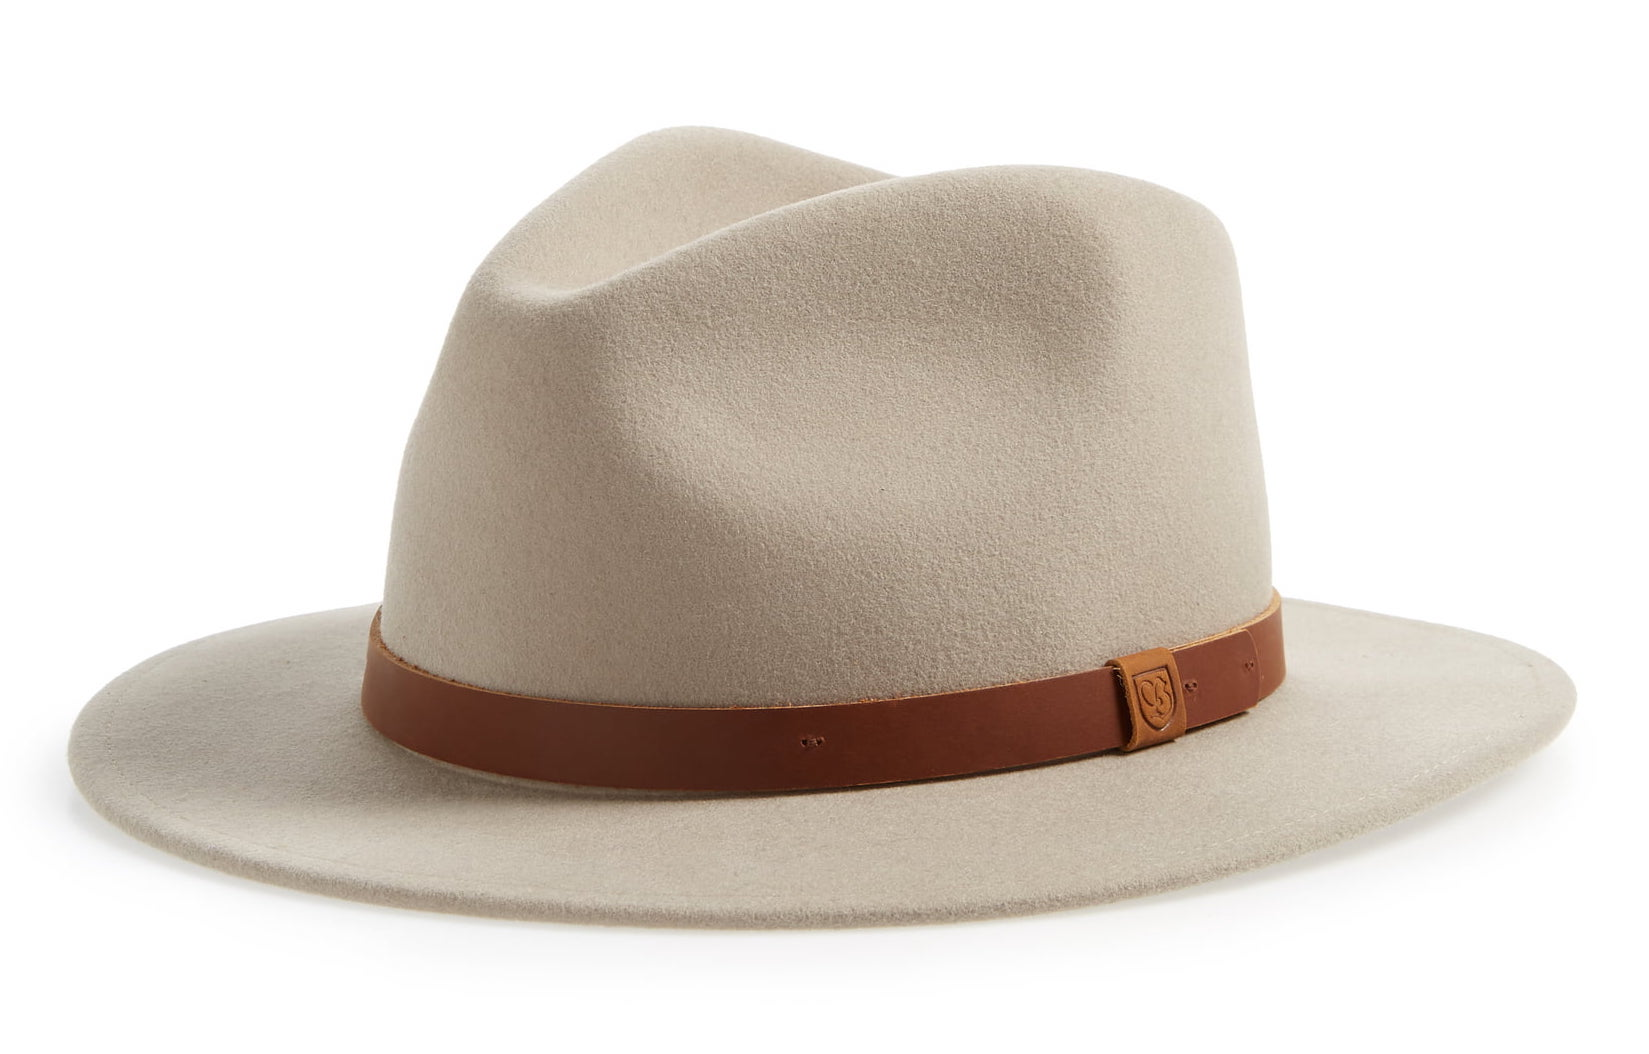 Anniversary gift for your stylish partner, a wool fedora